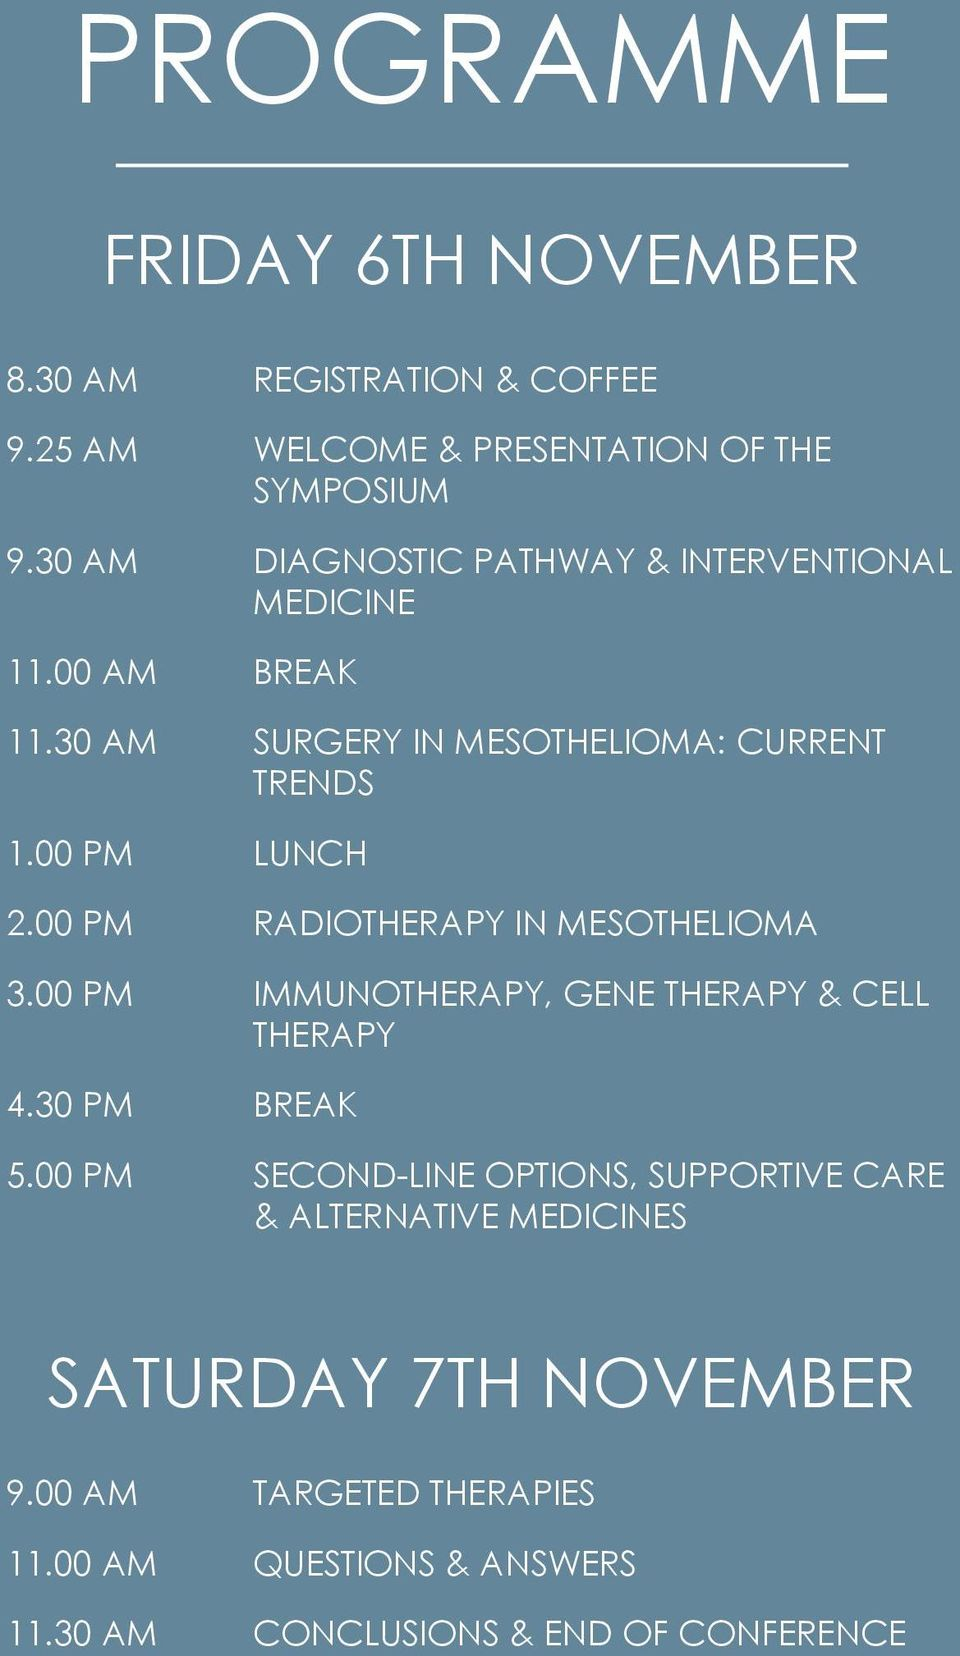 00 PM RADIOTHERAPY IN MESOTHELIOMA 3.00 PM IMMUNOTHERAPY, GENE THERAPY & CELL THERAPY 4.30 PM BREAK 5.